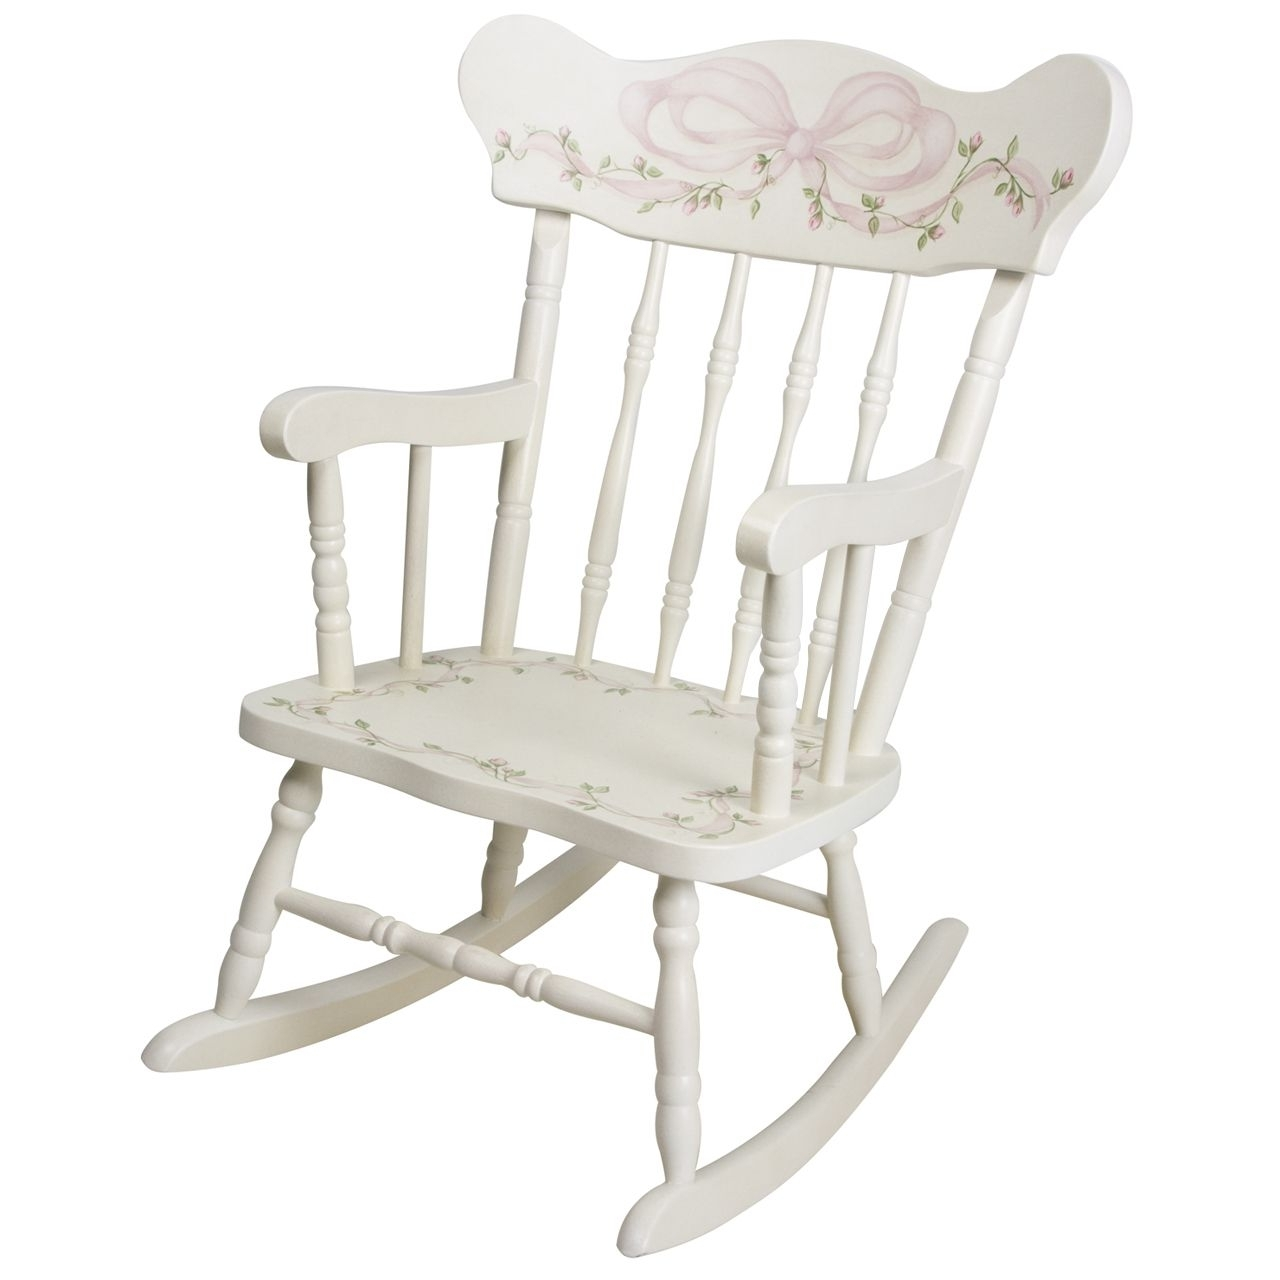 Popular Rocking Chairs At Roses For Afk Furniture – Child's Rocking Chair Ribbons And Roses, $ (View 11 of 20)